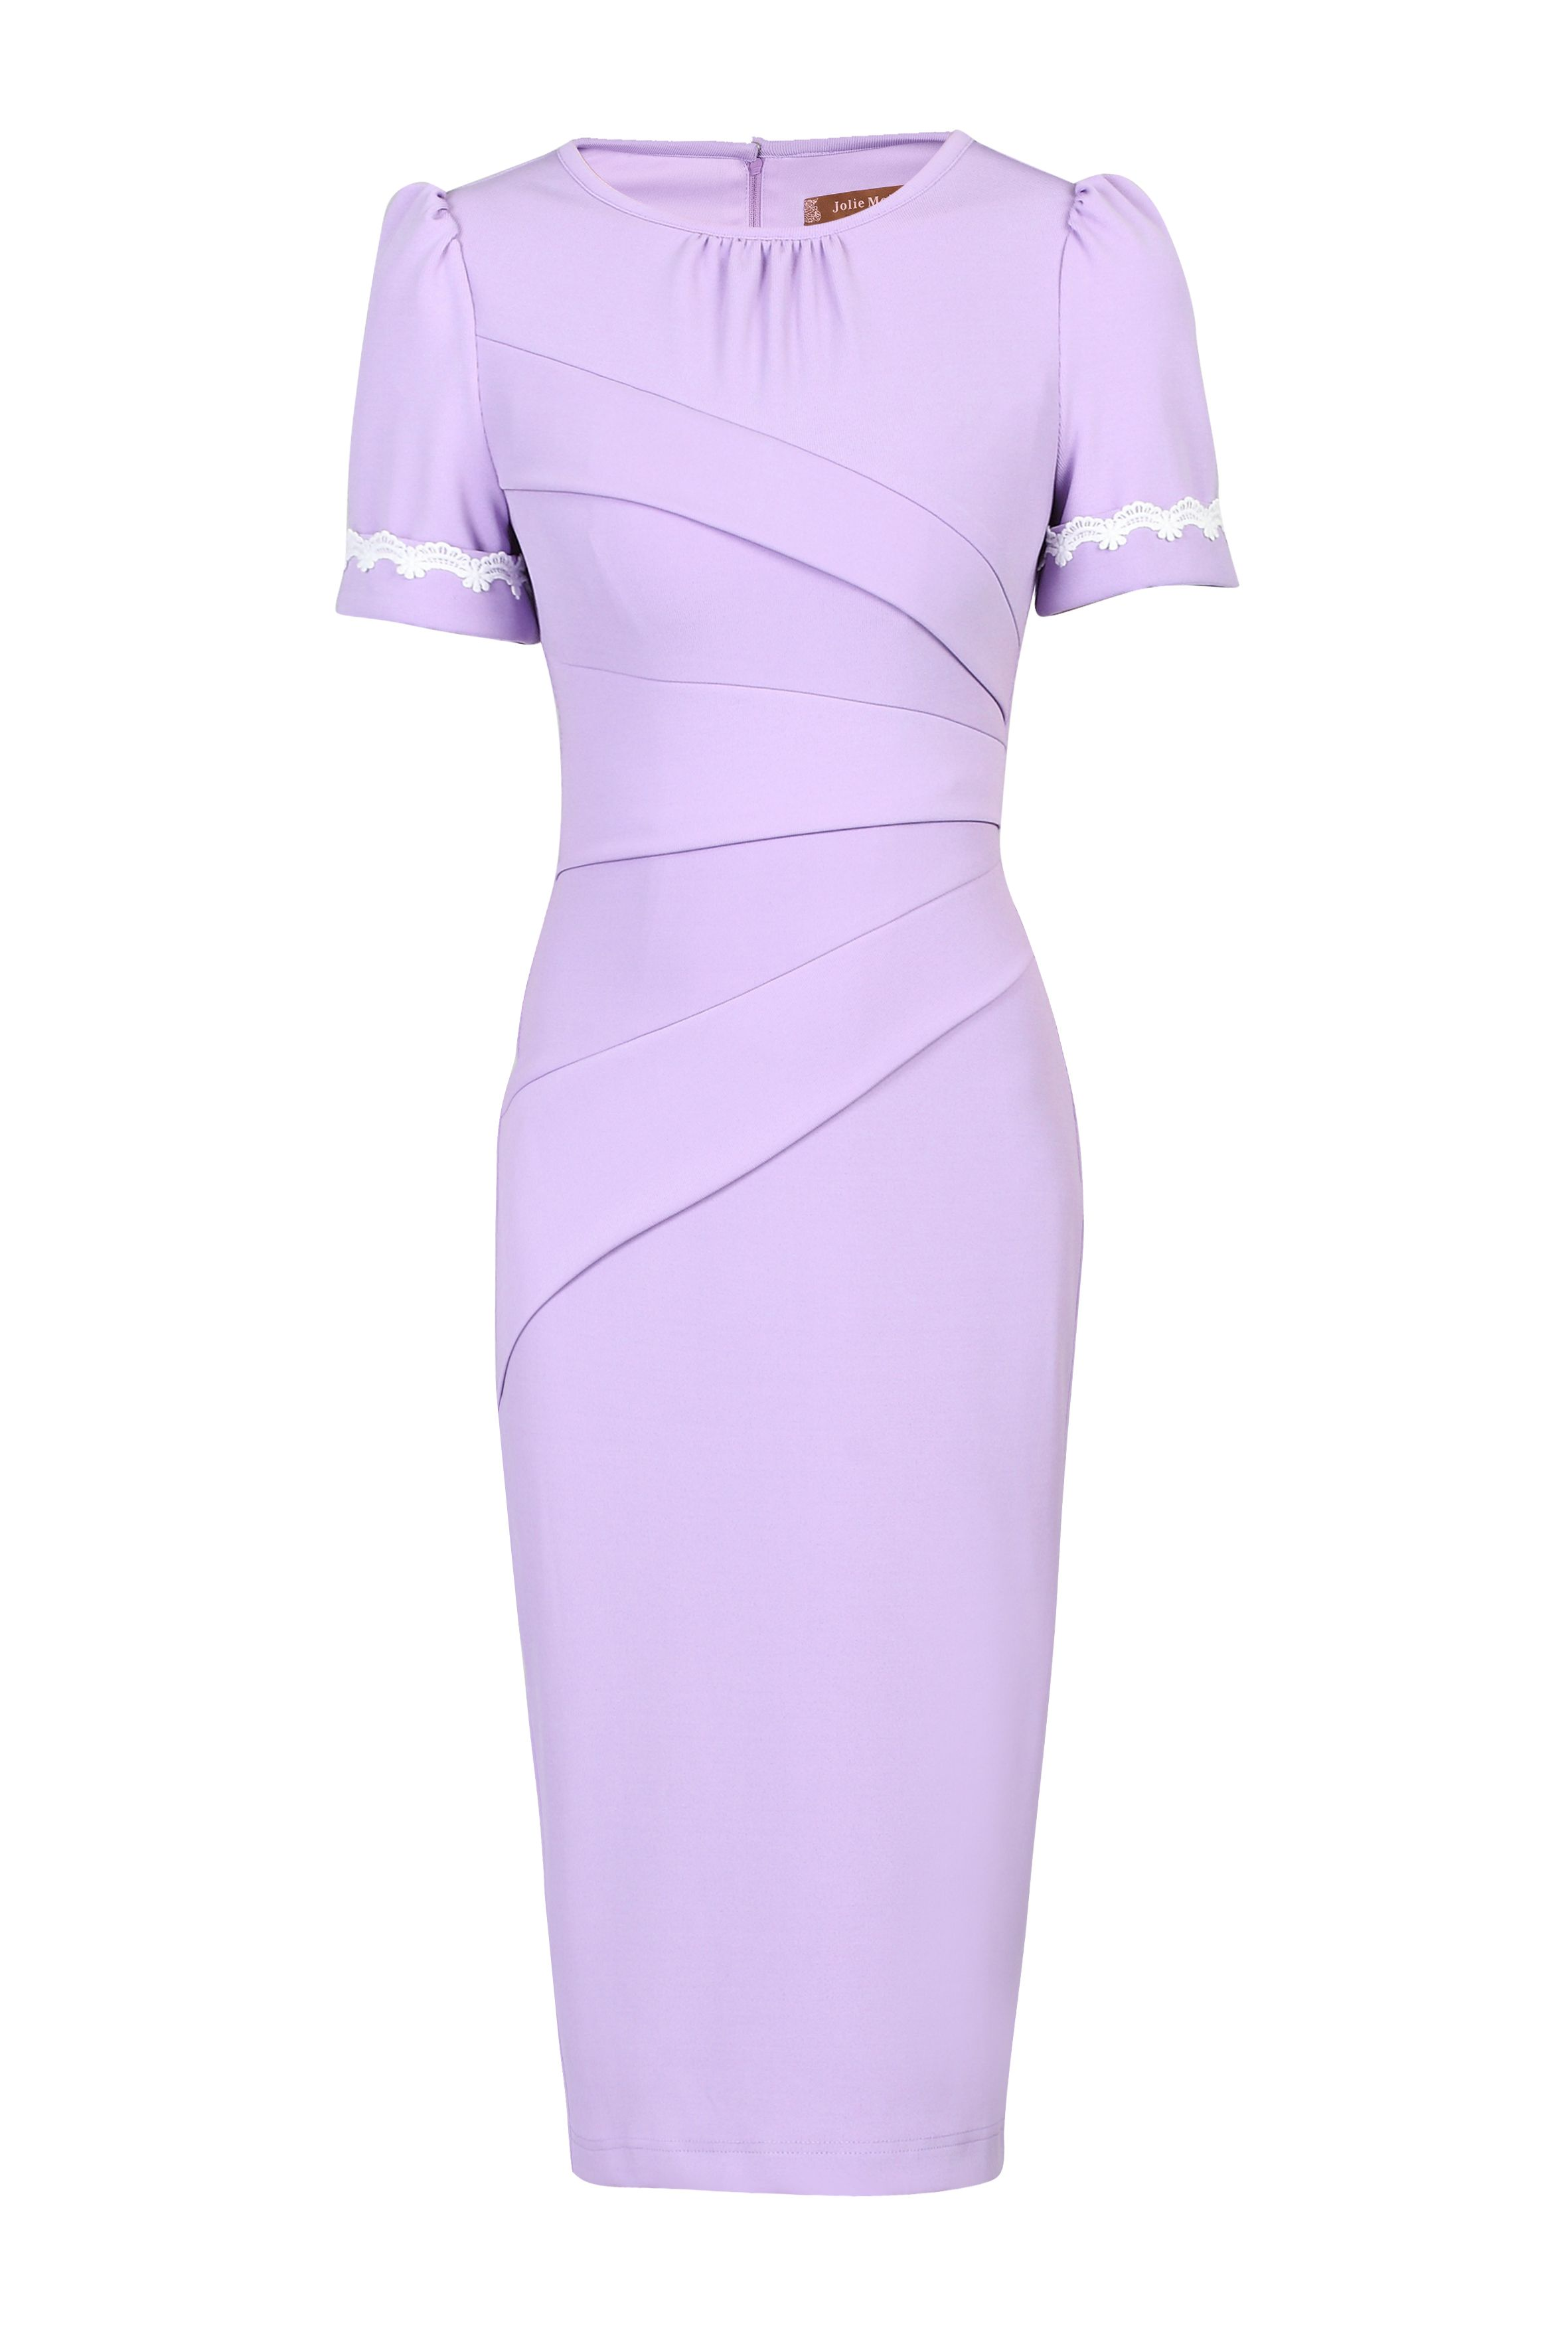 Jolie Moi Lace Trimmed Fold Detail Dress, Lilac